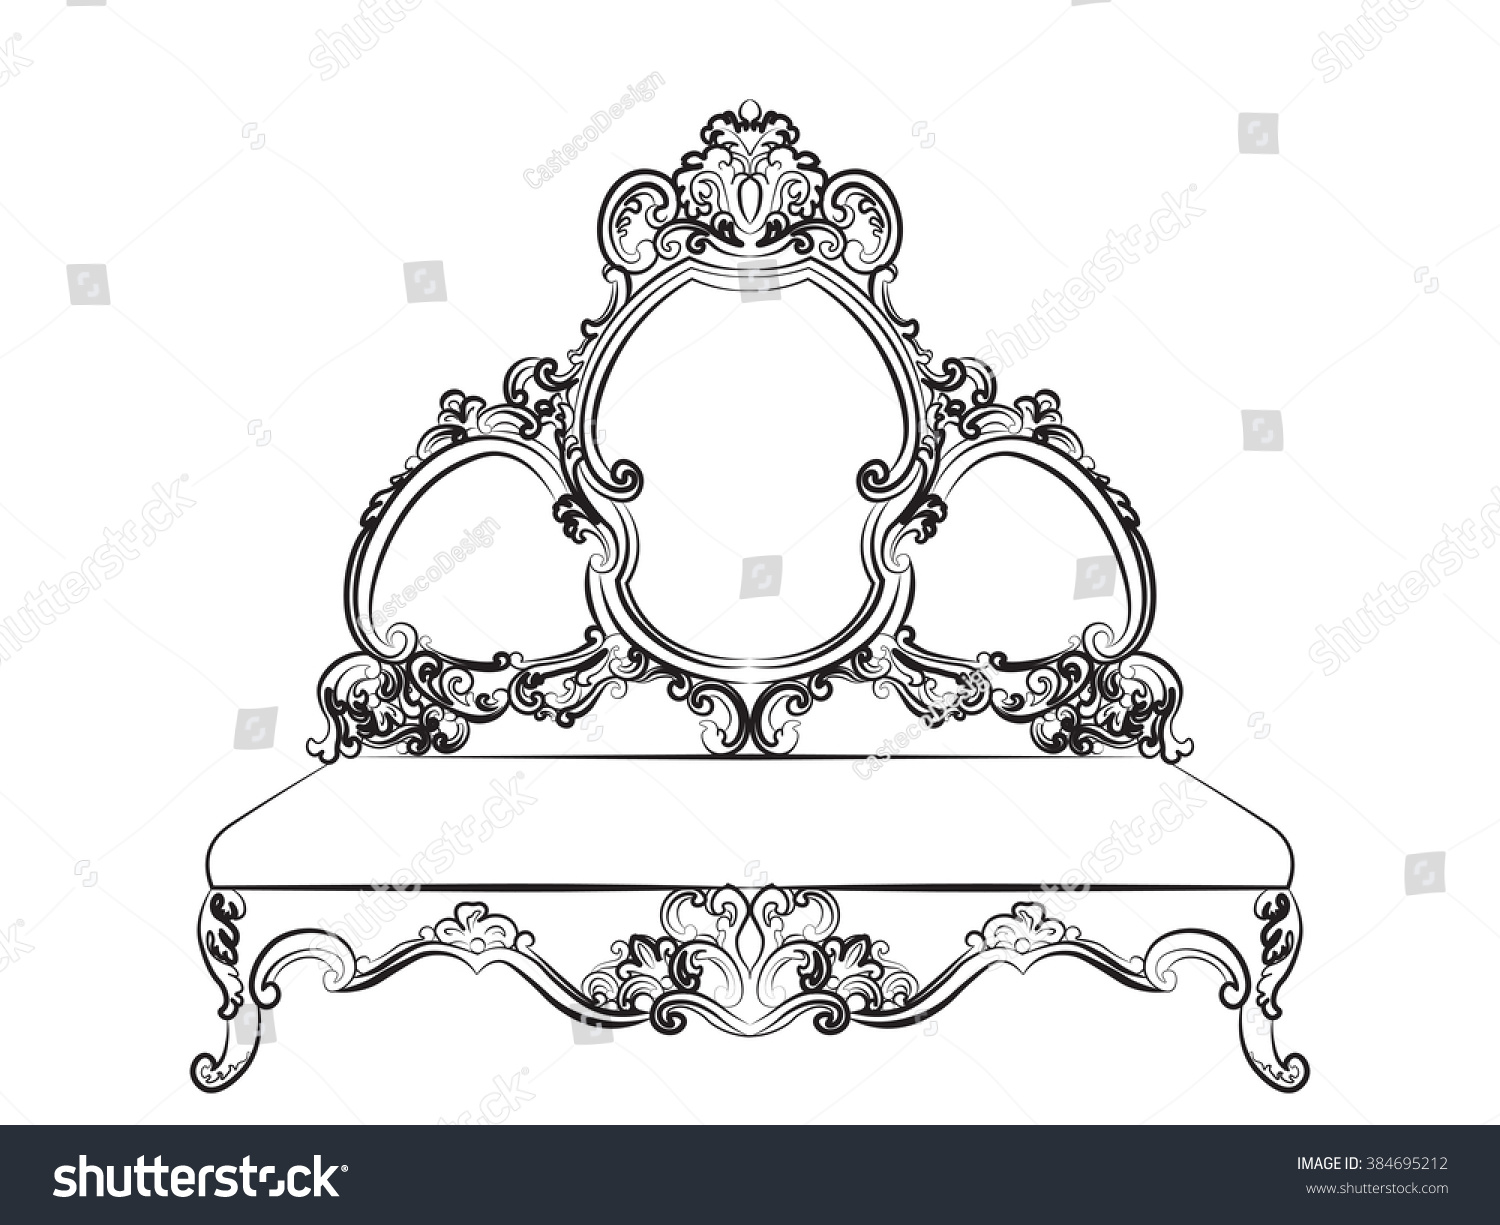 Rococo furniture sketch - Baroque Royal Style Furniture Rich Sofa Bench With Luxurious Ornaments Vector Sketch